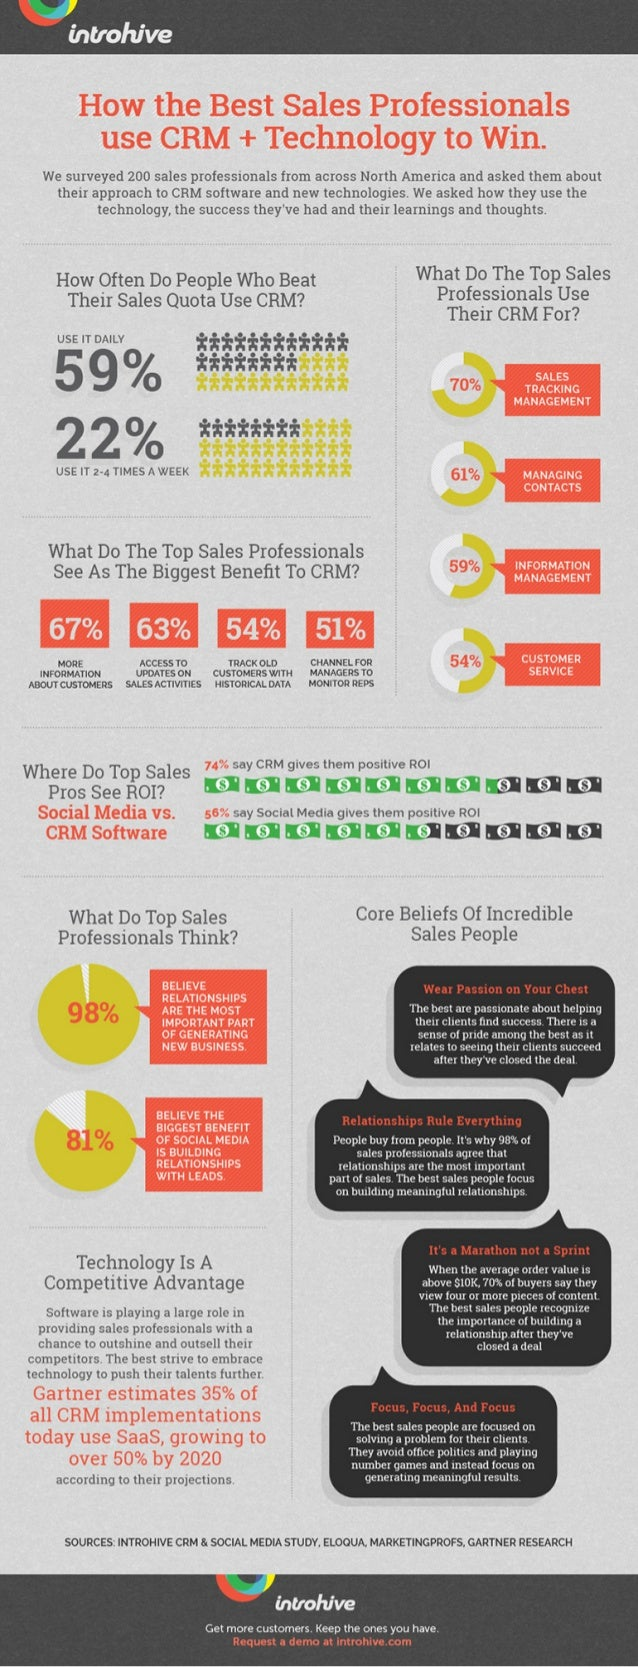 How the Best Sales Professionals Use CRM + Technology to Win